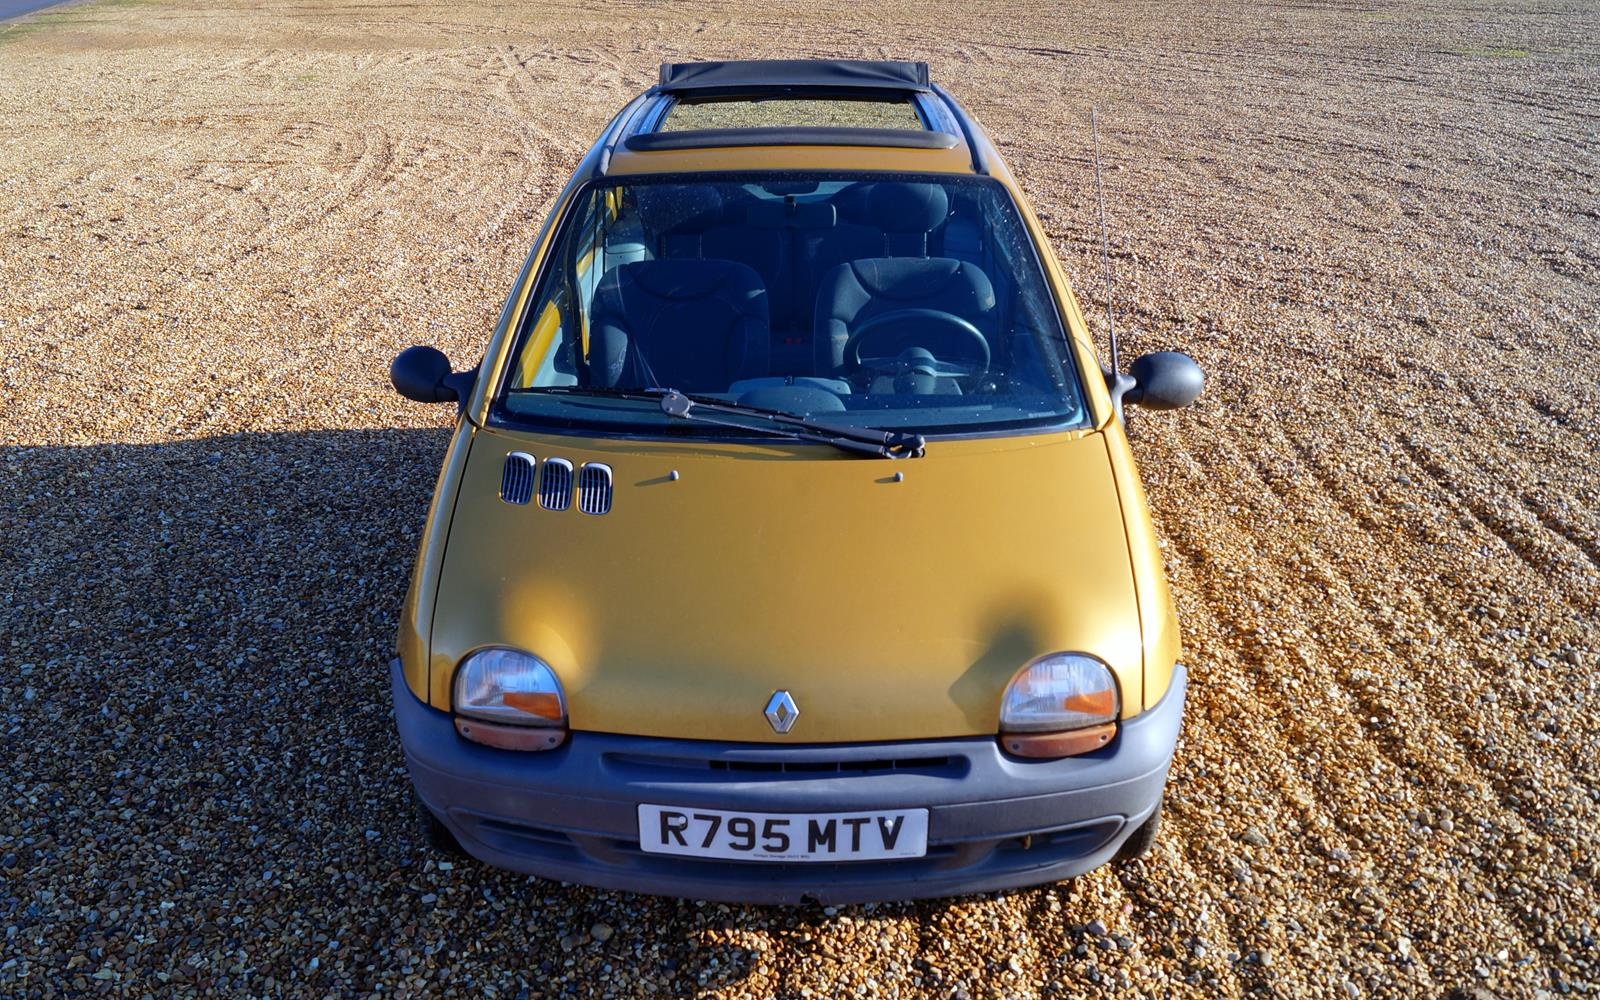 Renault Twingo 1998 Front